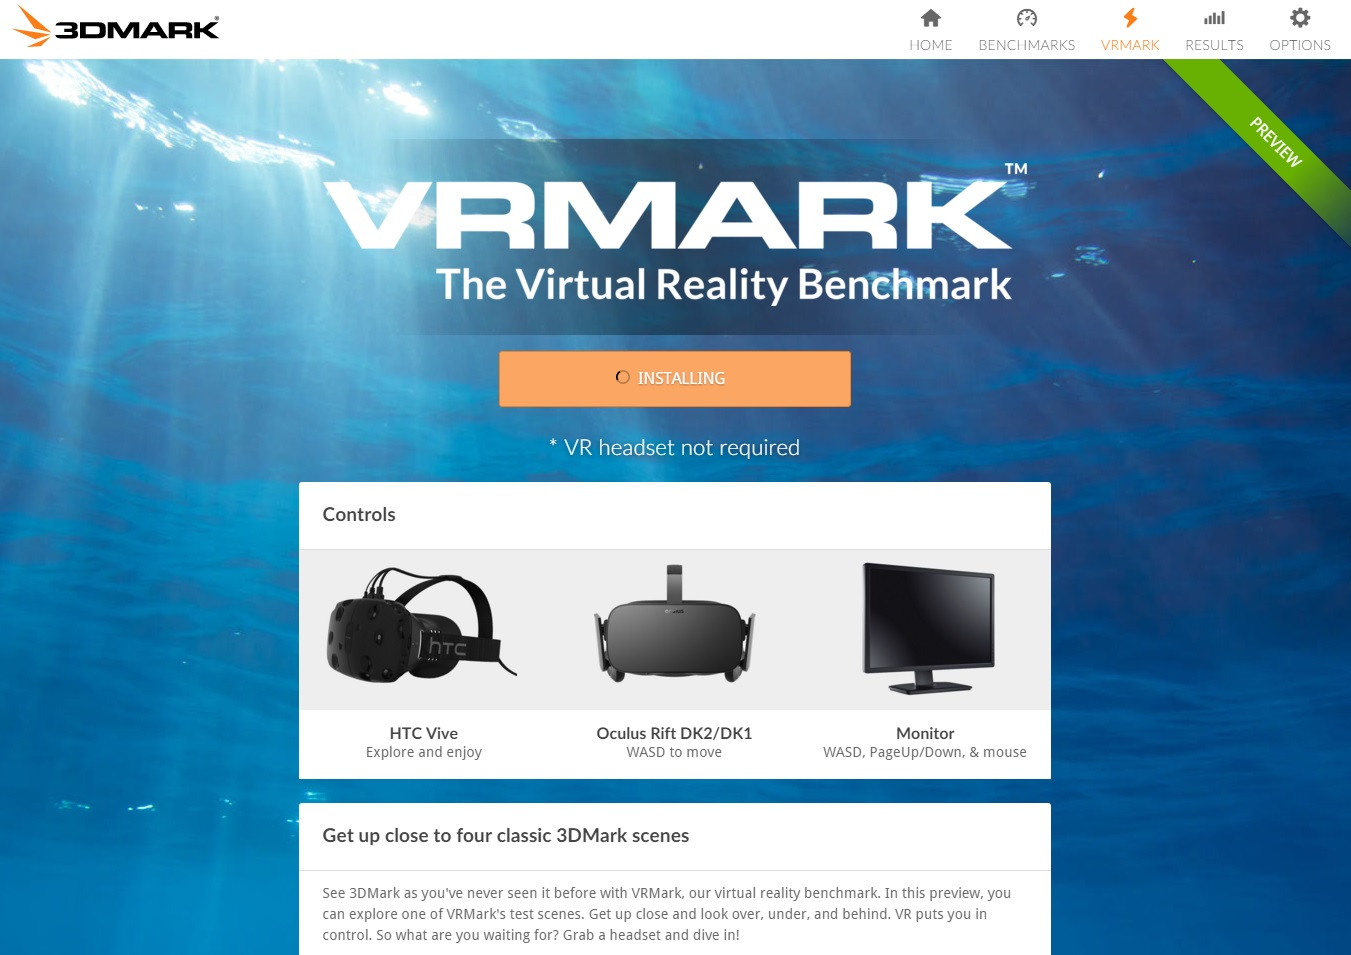 3DMARK Holiday Beta - New UI and VRMARK Preview